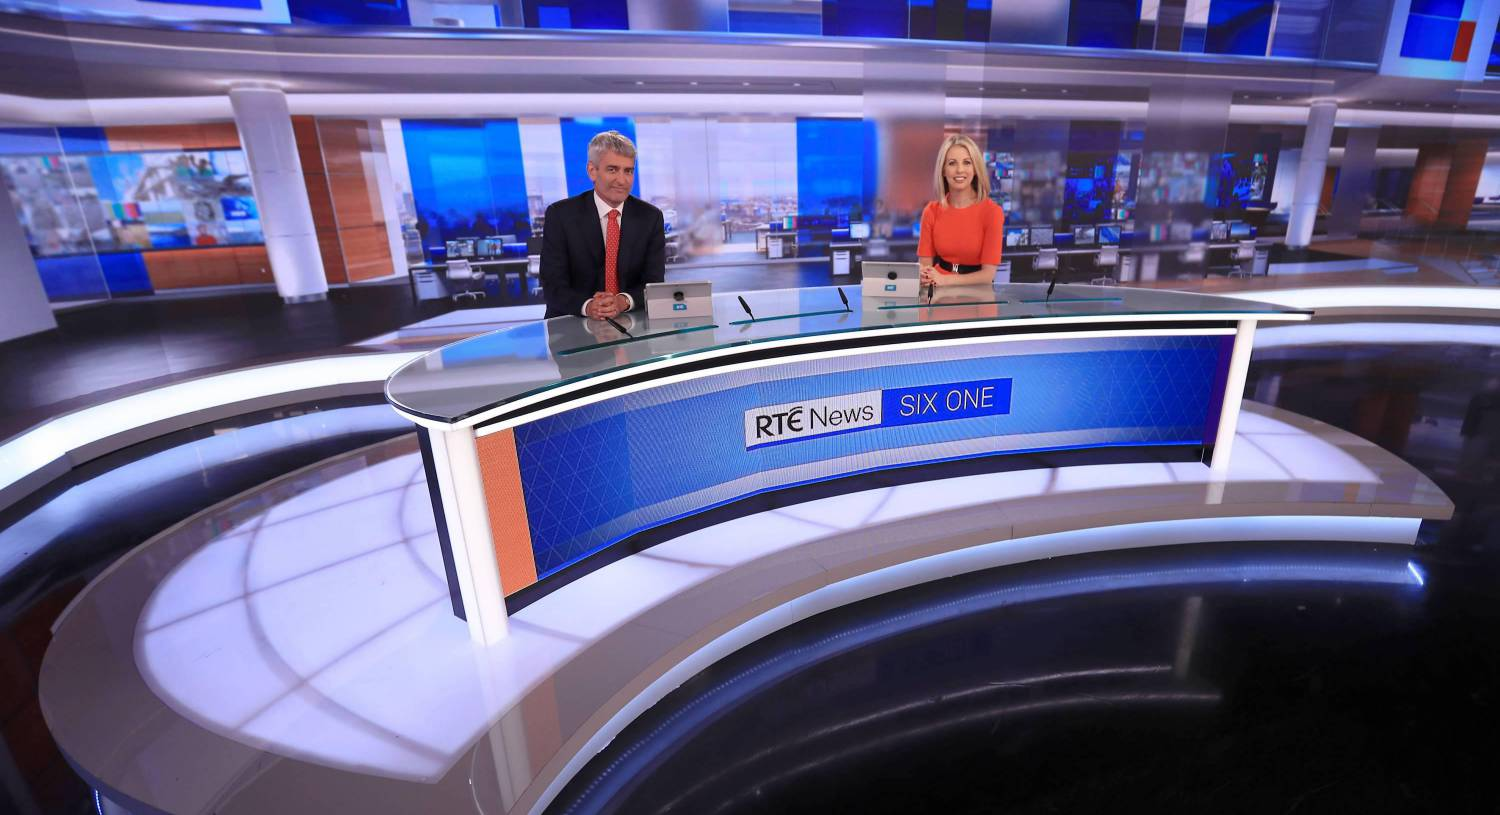 David McCullagh and Caitriona Perry who will begin presenting RTE